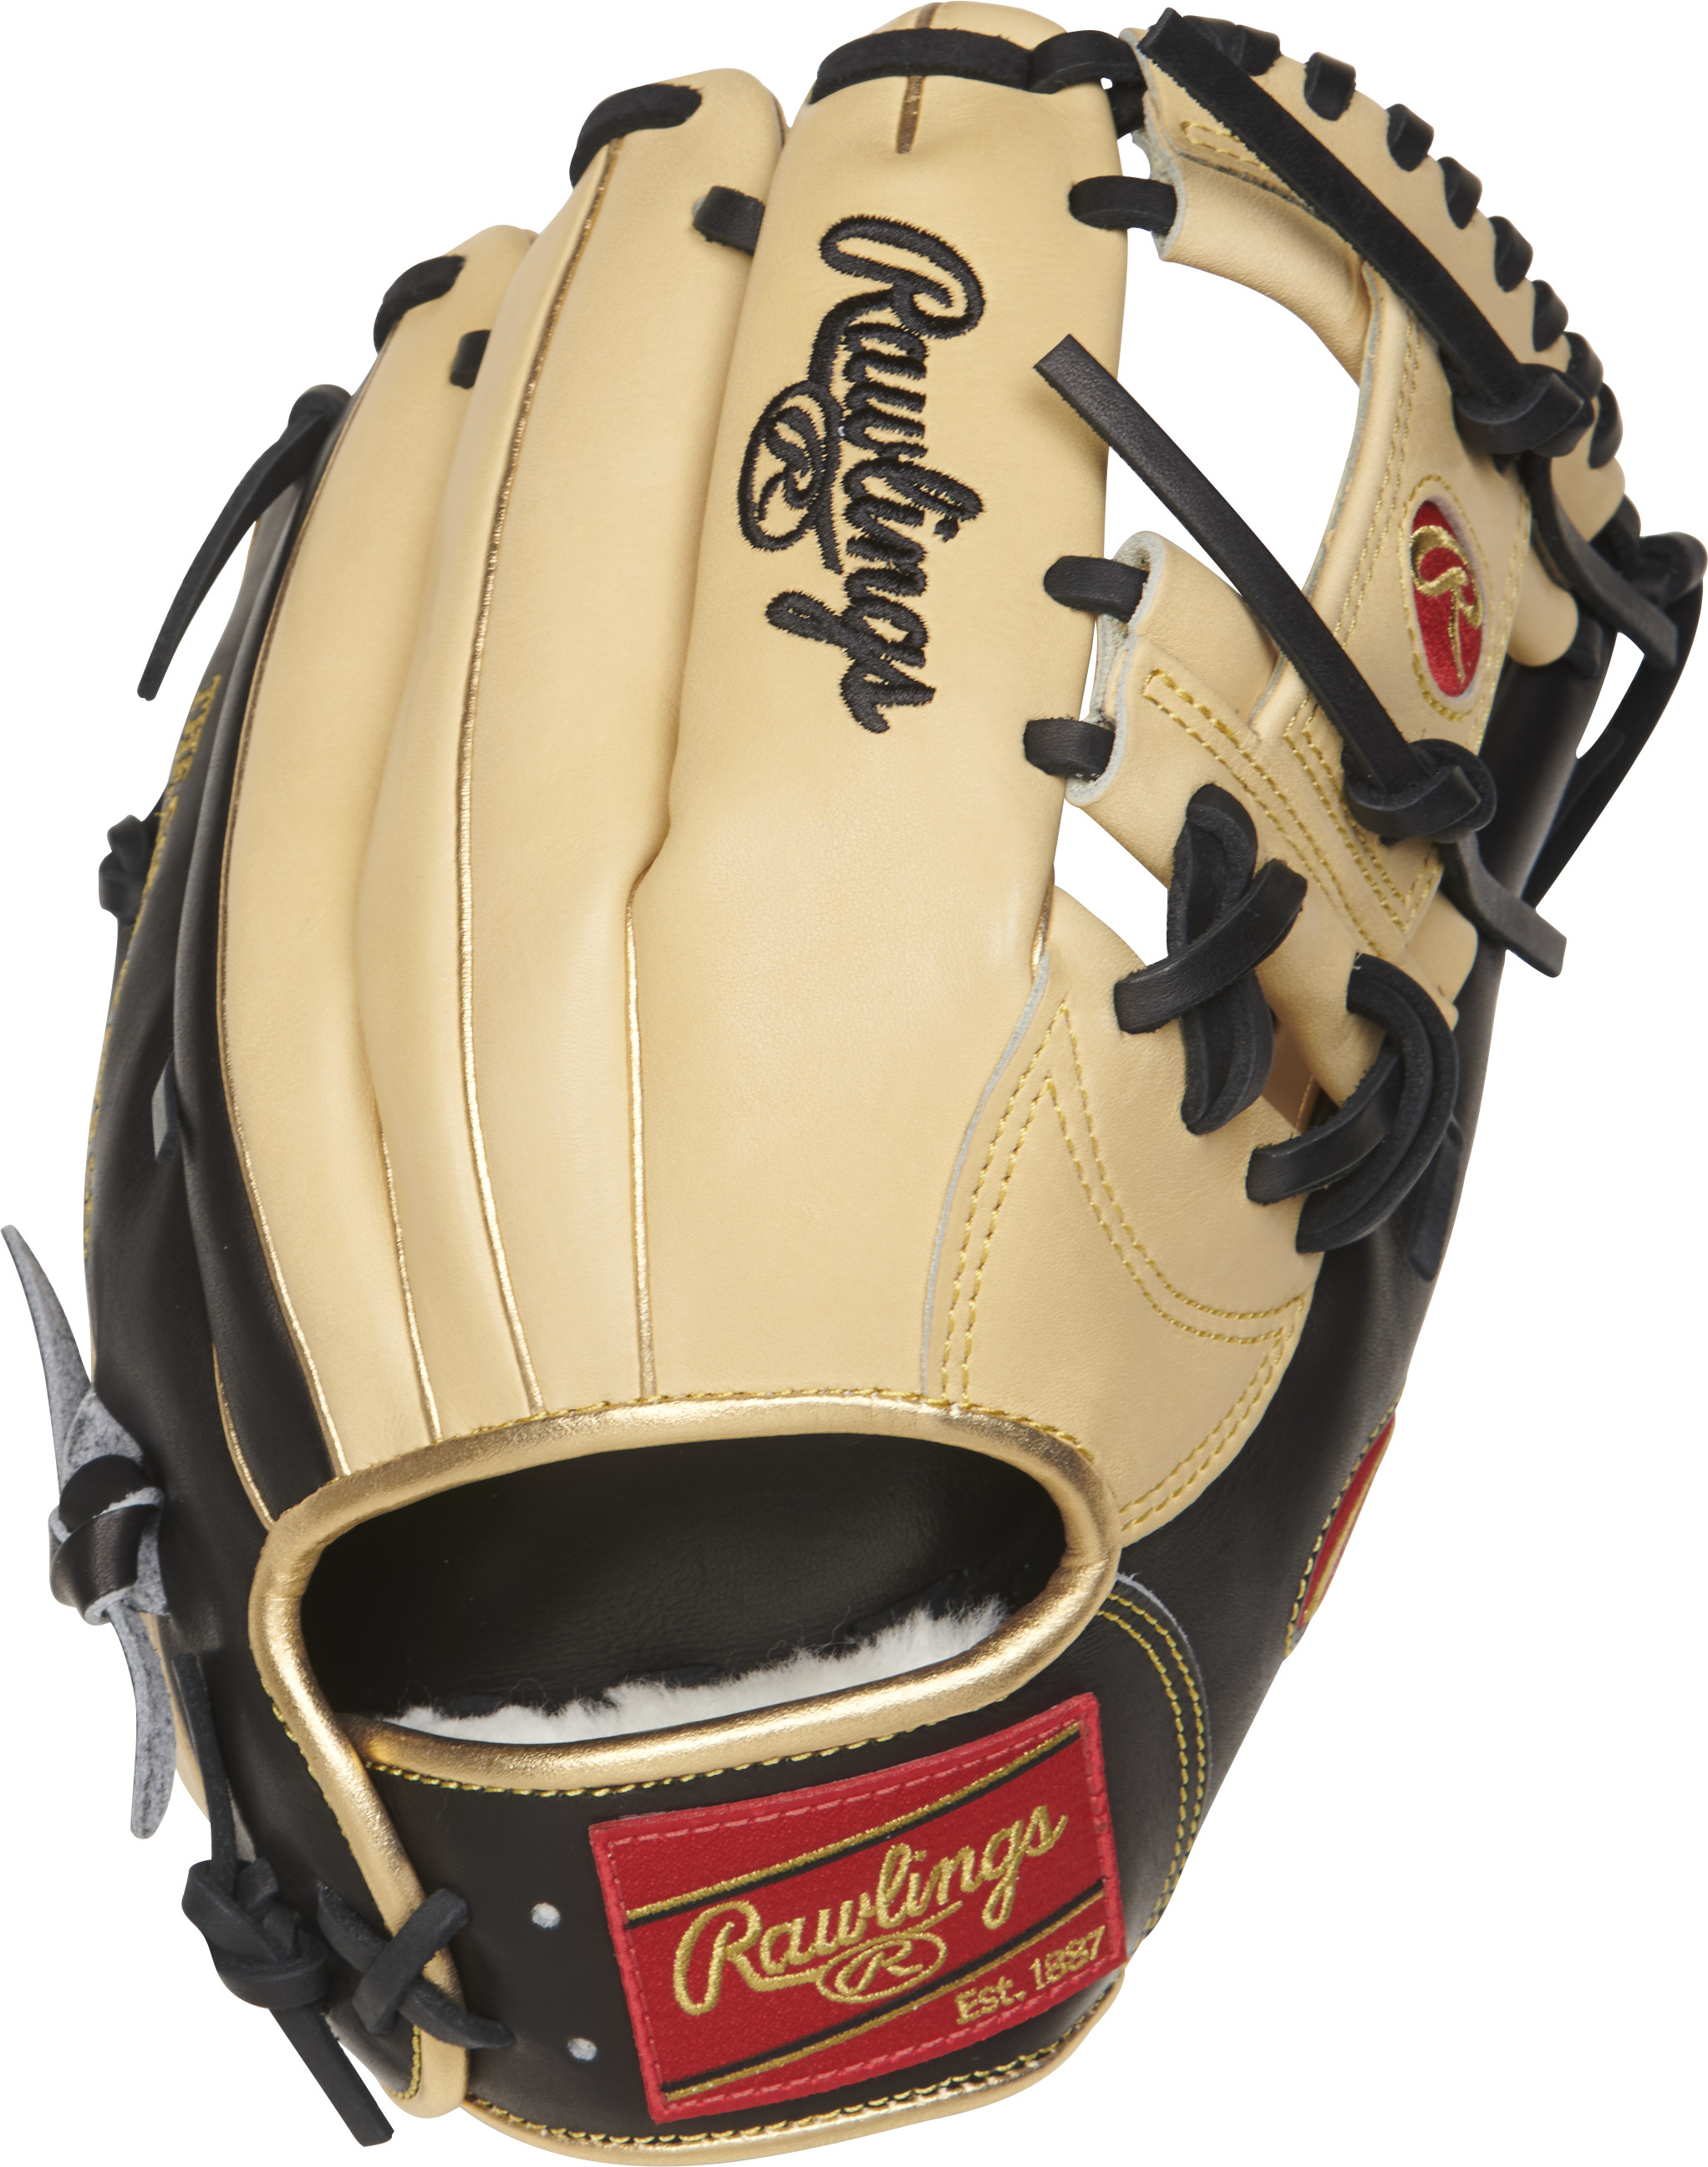 http://www.bestbatdeals.com/images/gloves/rawlings/PROSNP5-2CBG-2.jpg